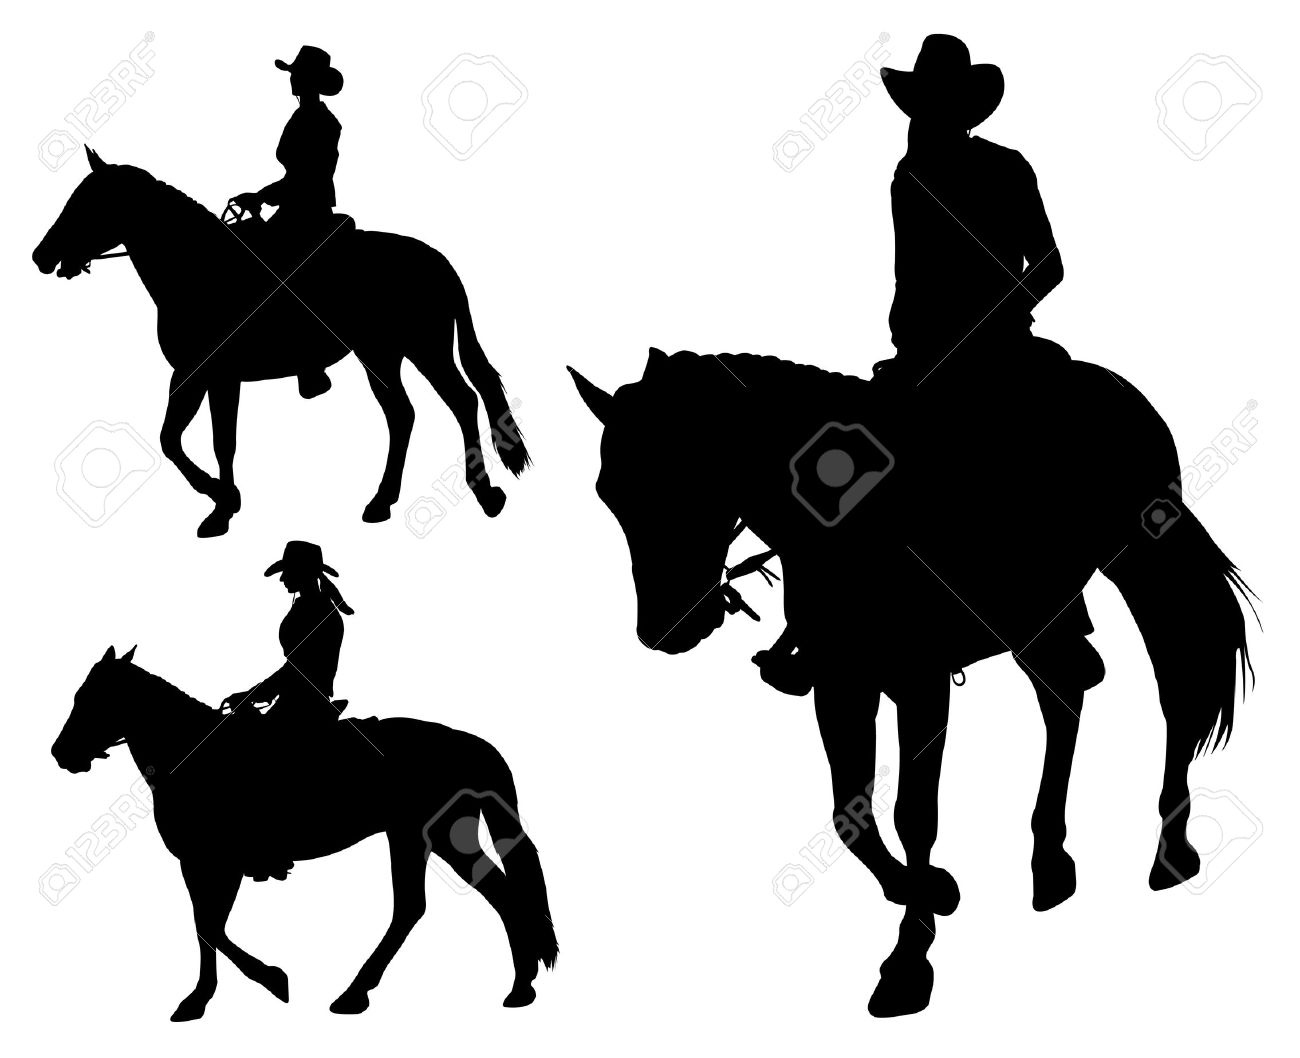 cowgirl riding horse silhouettes - 20626624